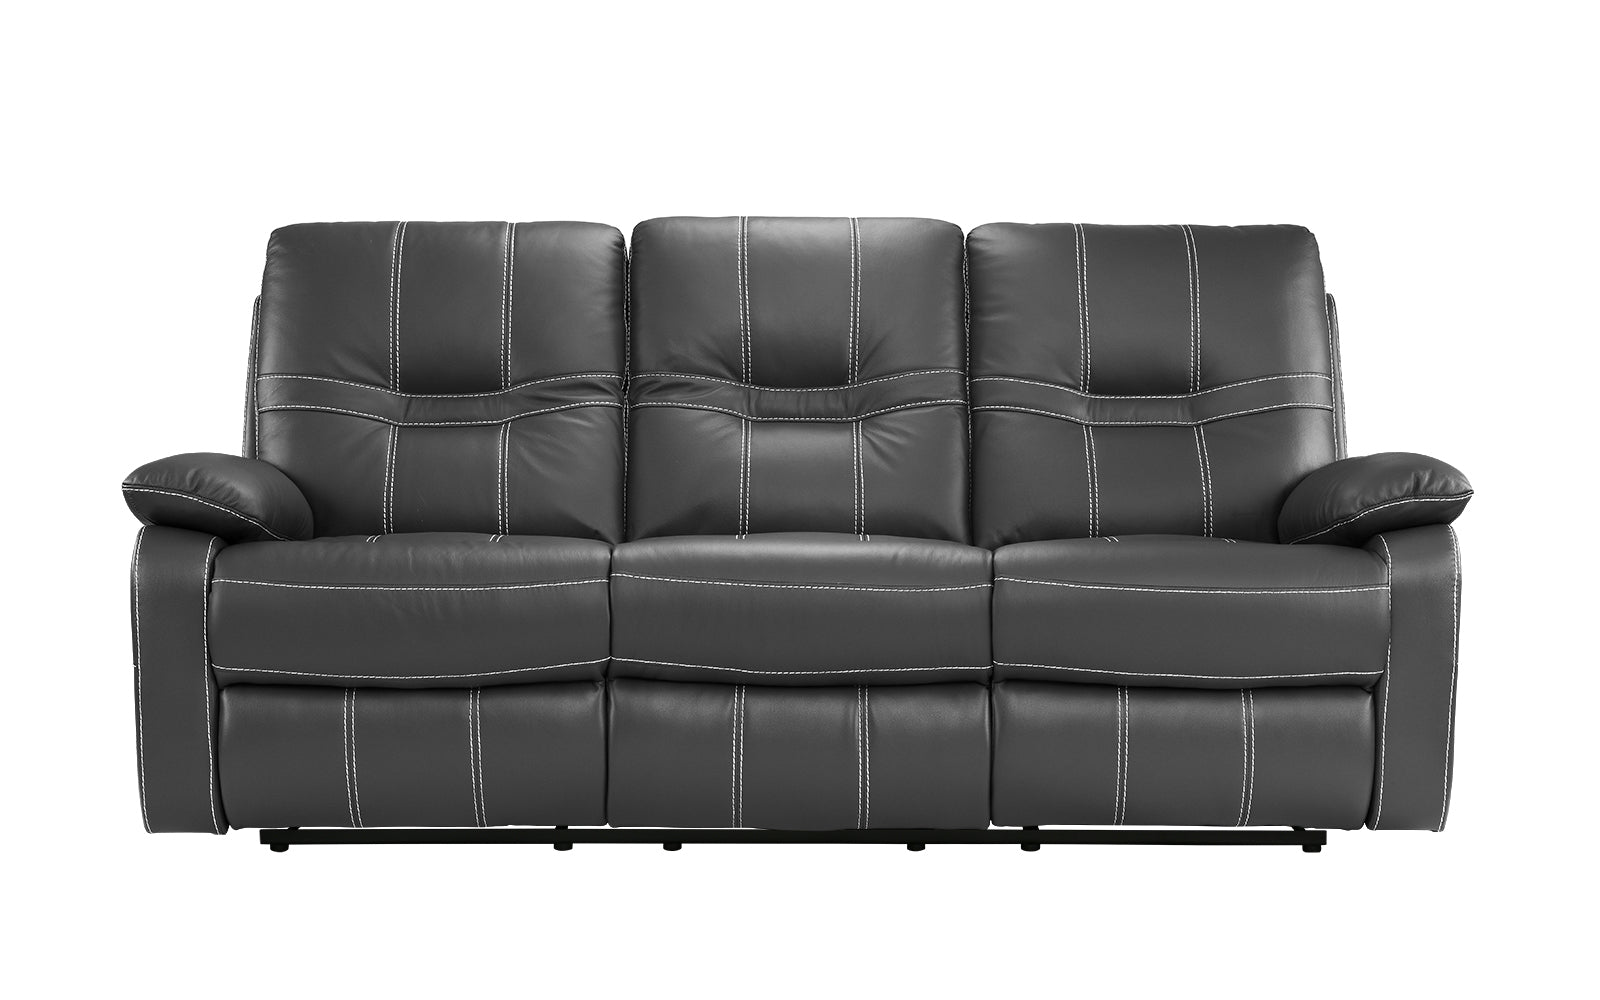 Carter Modern Reclining Leather Sofa Set | Sofamania.com